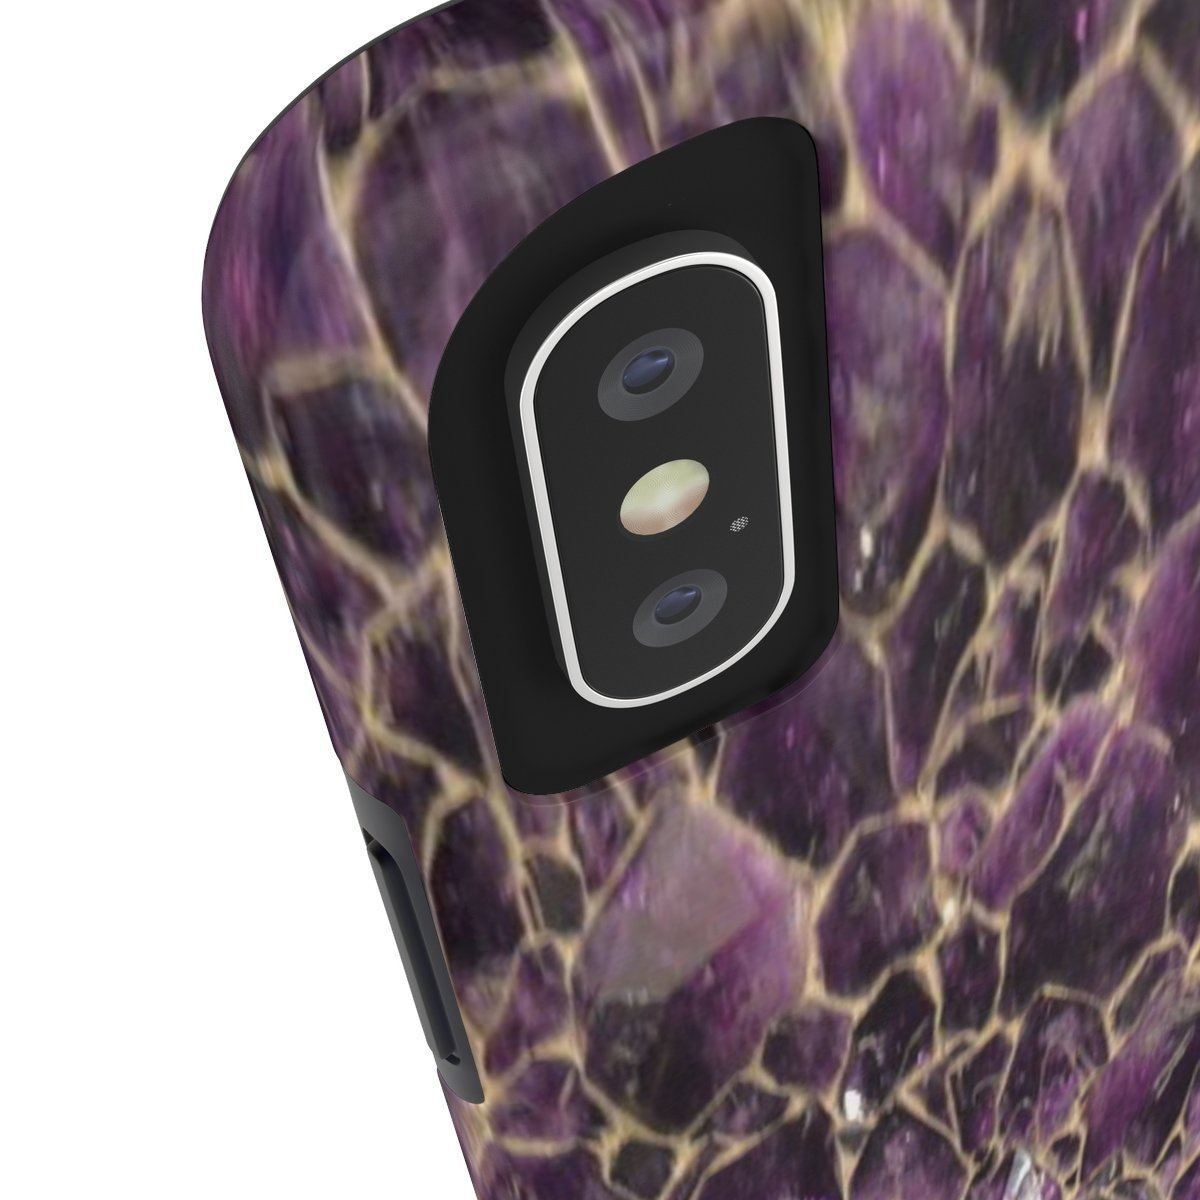 iPhone 11 - Case Mate Tough Phone Cases - Extremely strong plastic - Crystals from minerals - Smithsonian - WA DC Phone Case Printify